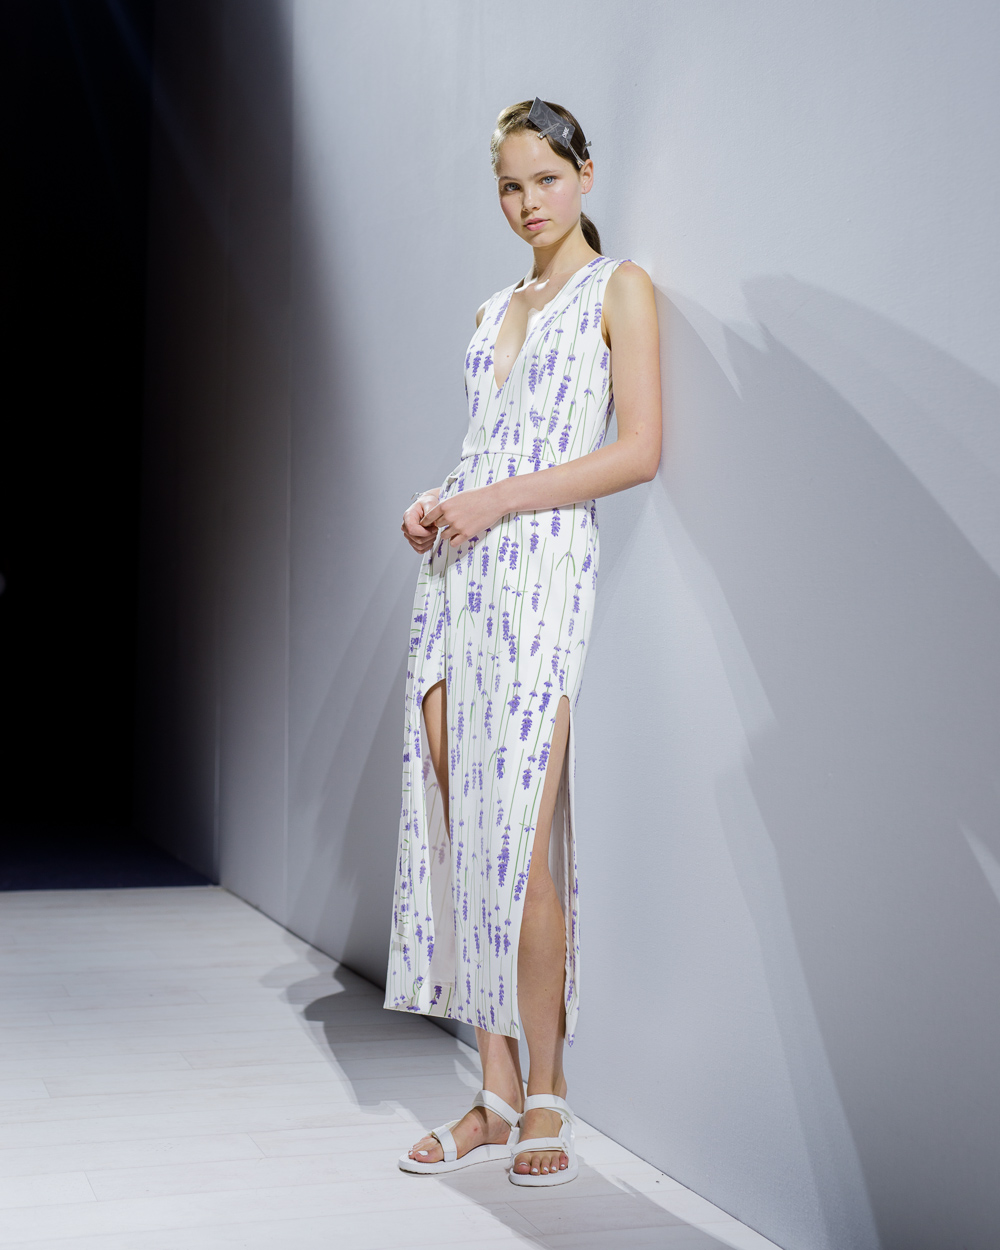 KARENWOO_MBFWA_DAY3_KARLASPETIC_018